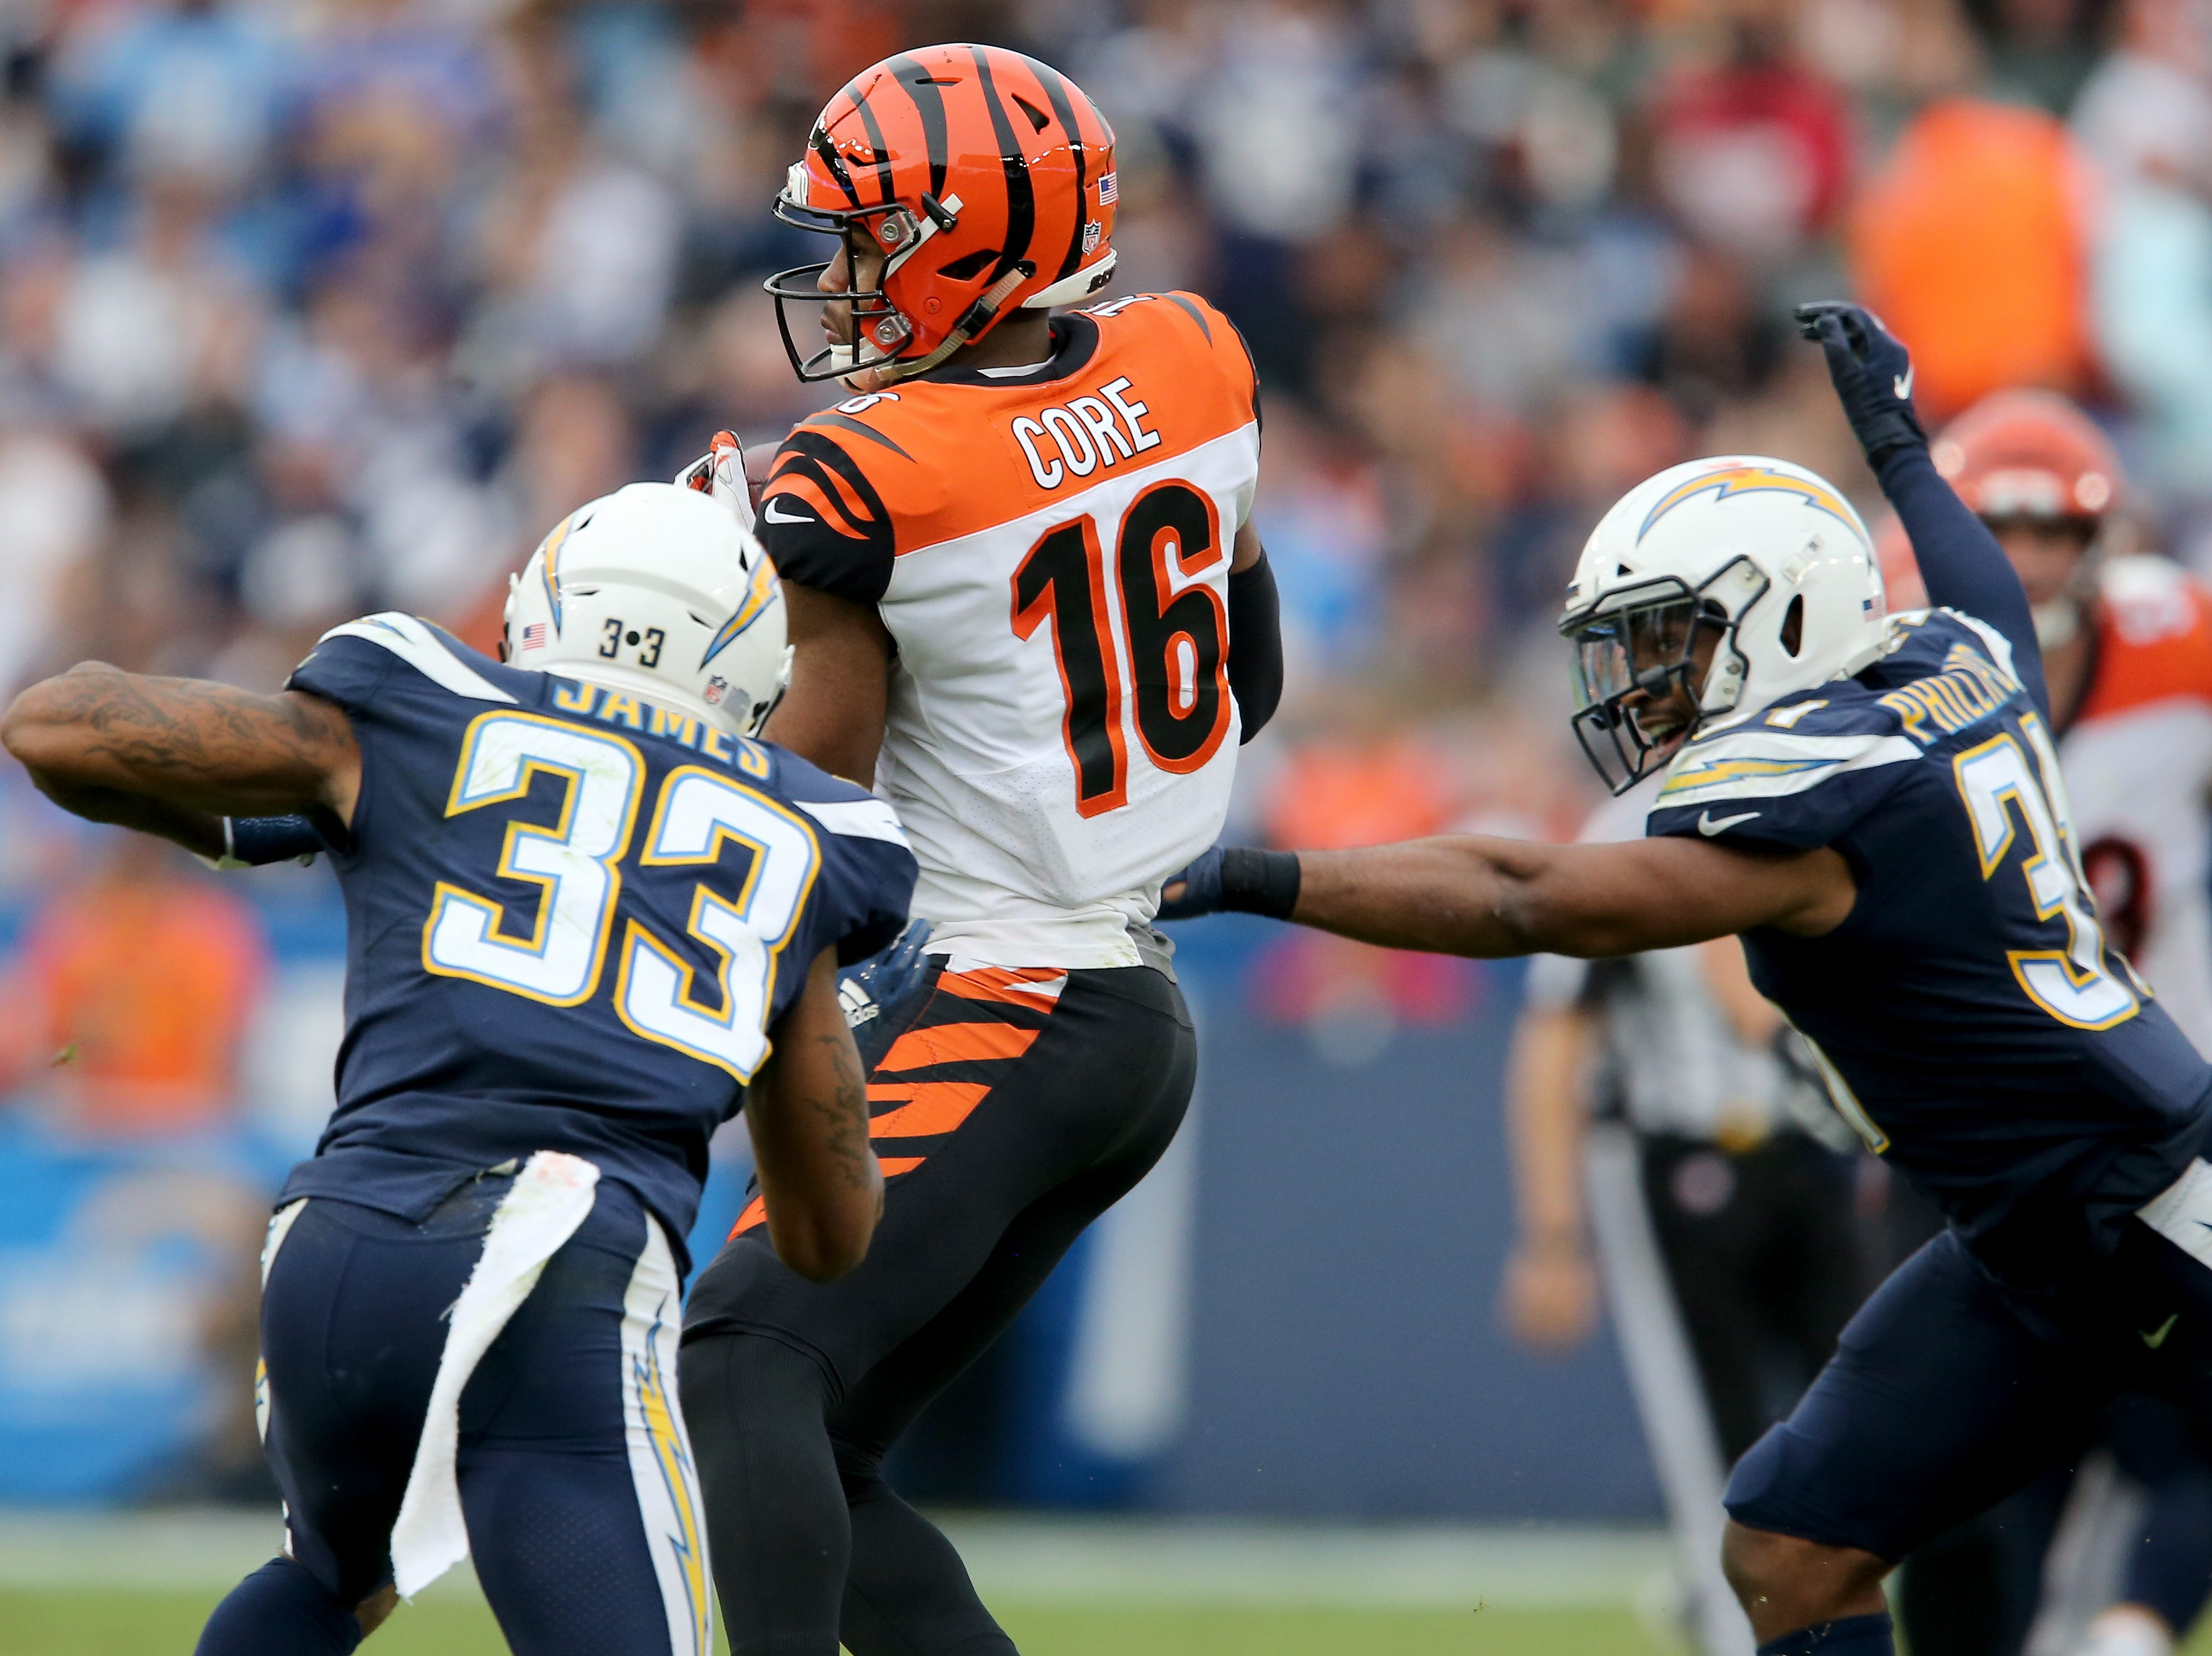 Cincinnati Bengals wide receiver Cody Core (16) completes a catch in the fourth quarter of a Week 14 NFL football game against the Los Angeles Chargers, Sunday, Dec. 9, 2018, at StubHub Center in Carson, California.